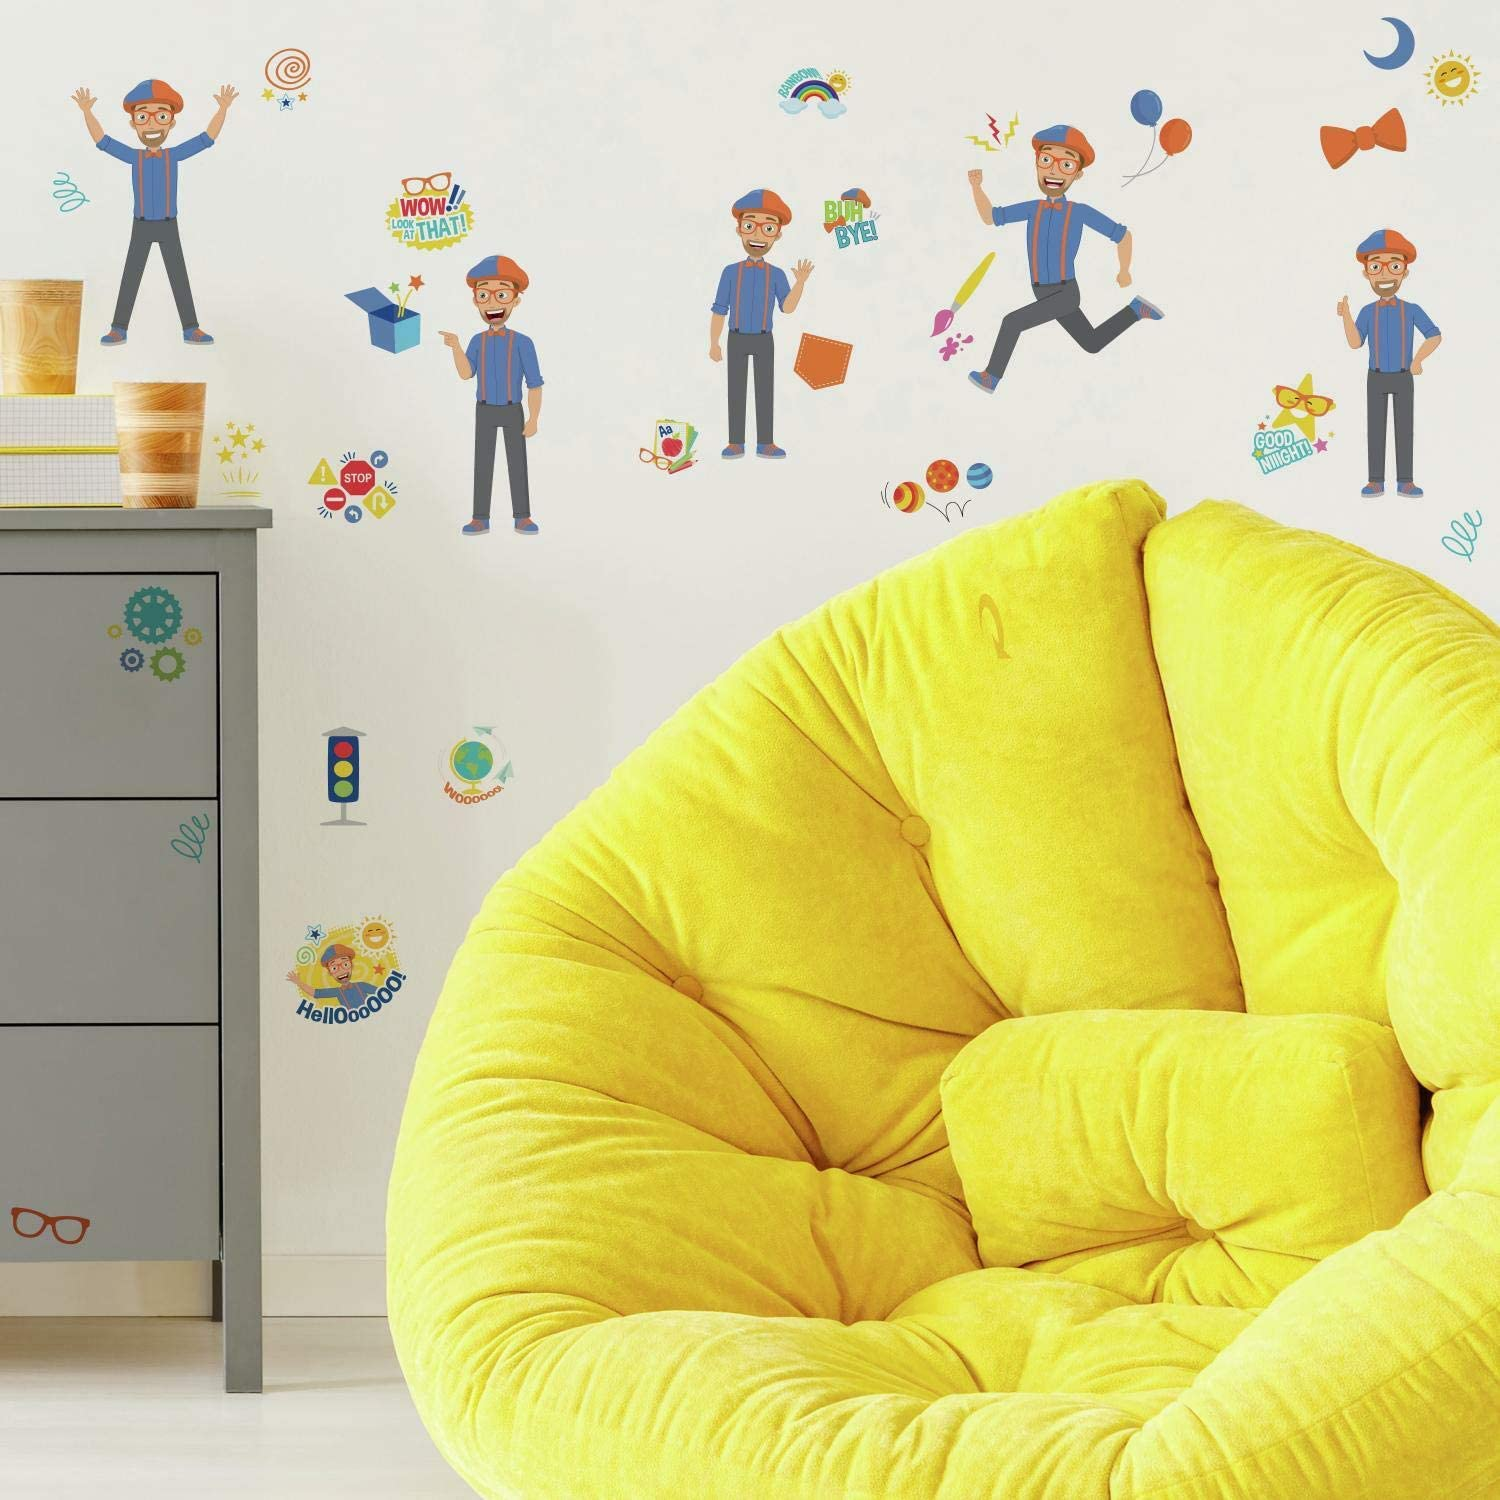 RoomMates RMK4472SCS Blippi Character Peel and Stick Wall Decals, Blue, Orange